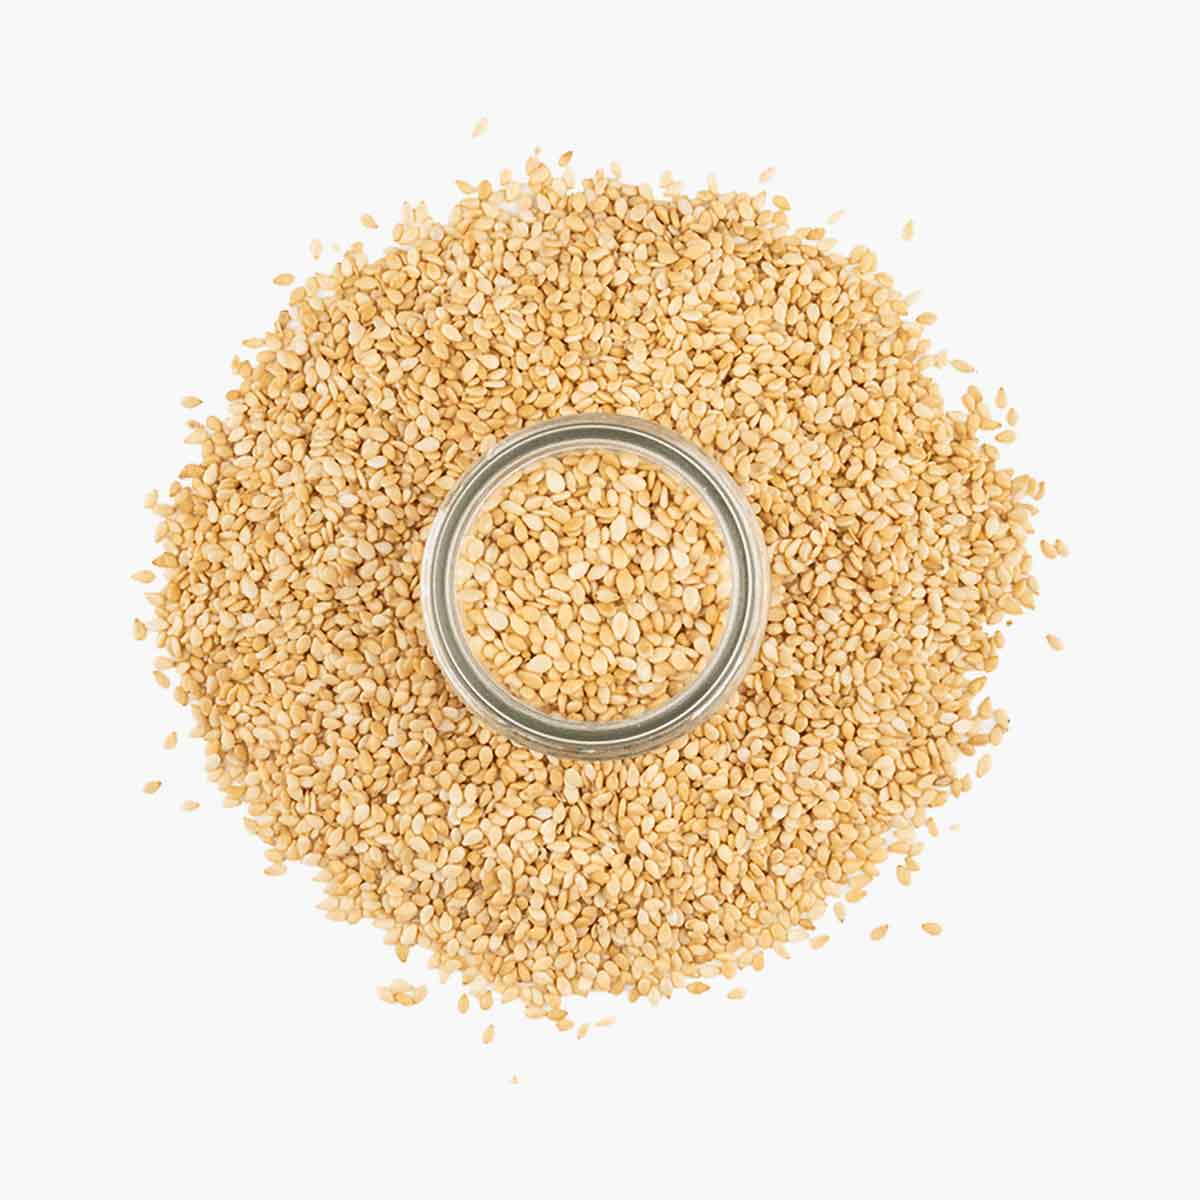 Large pile of Toasted Sesame Seeds on white background.